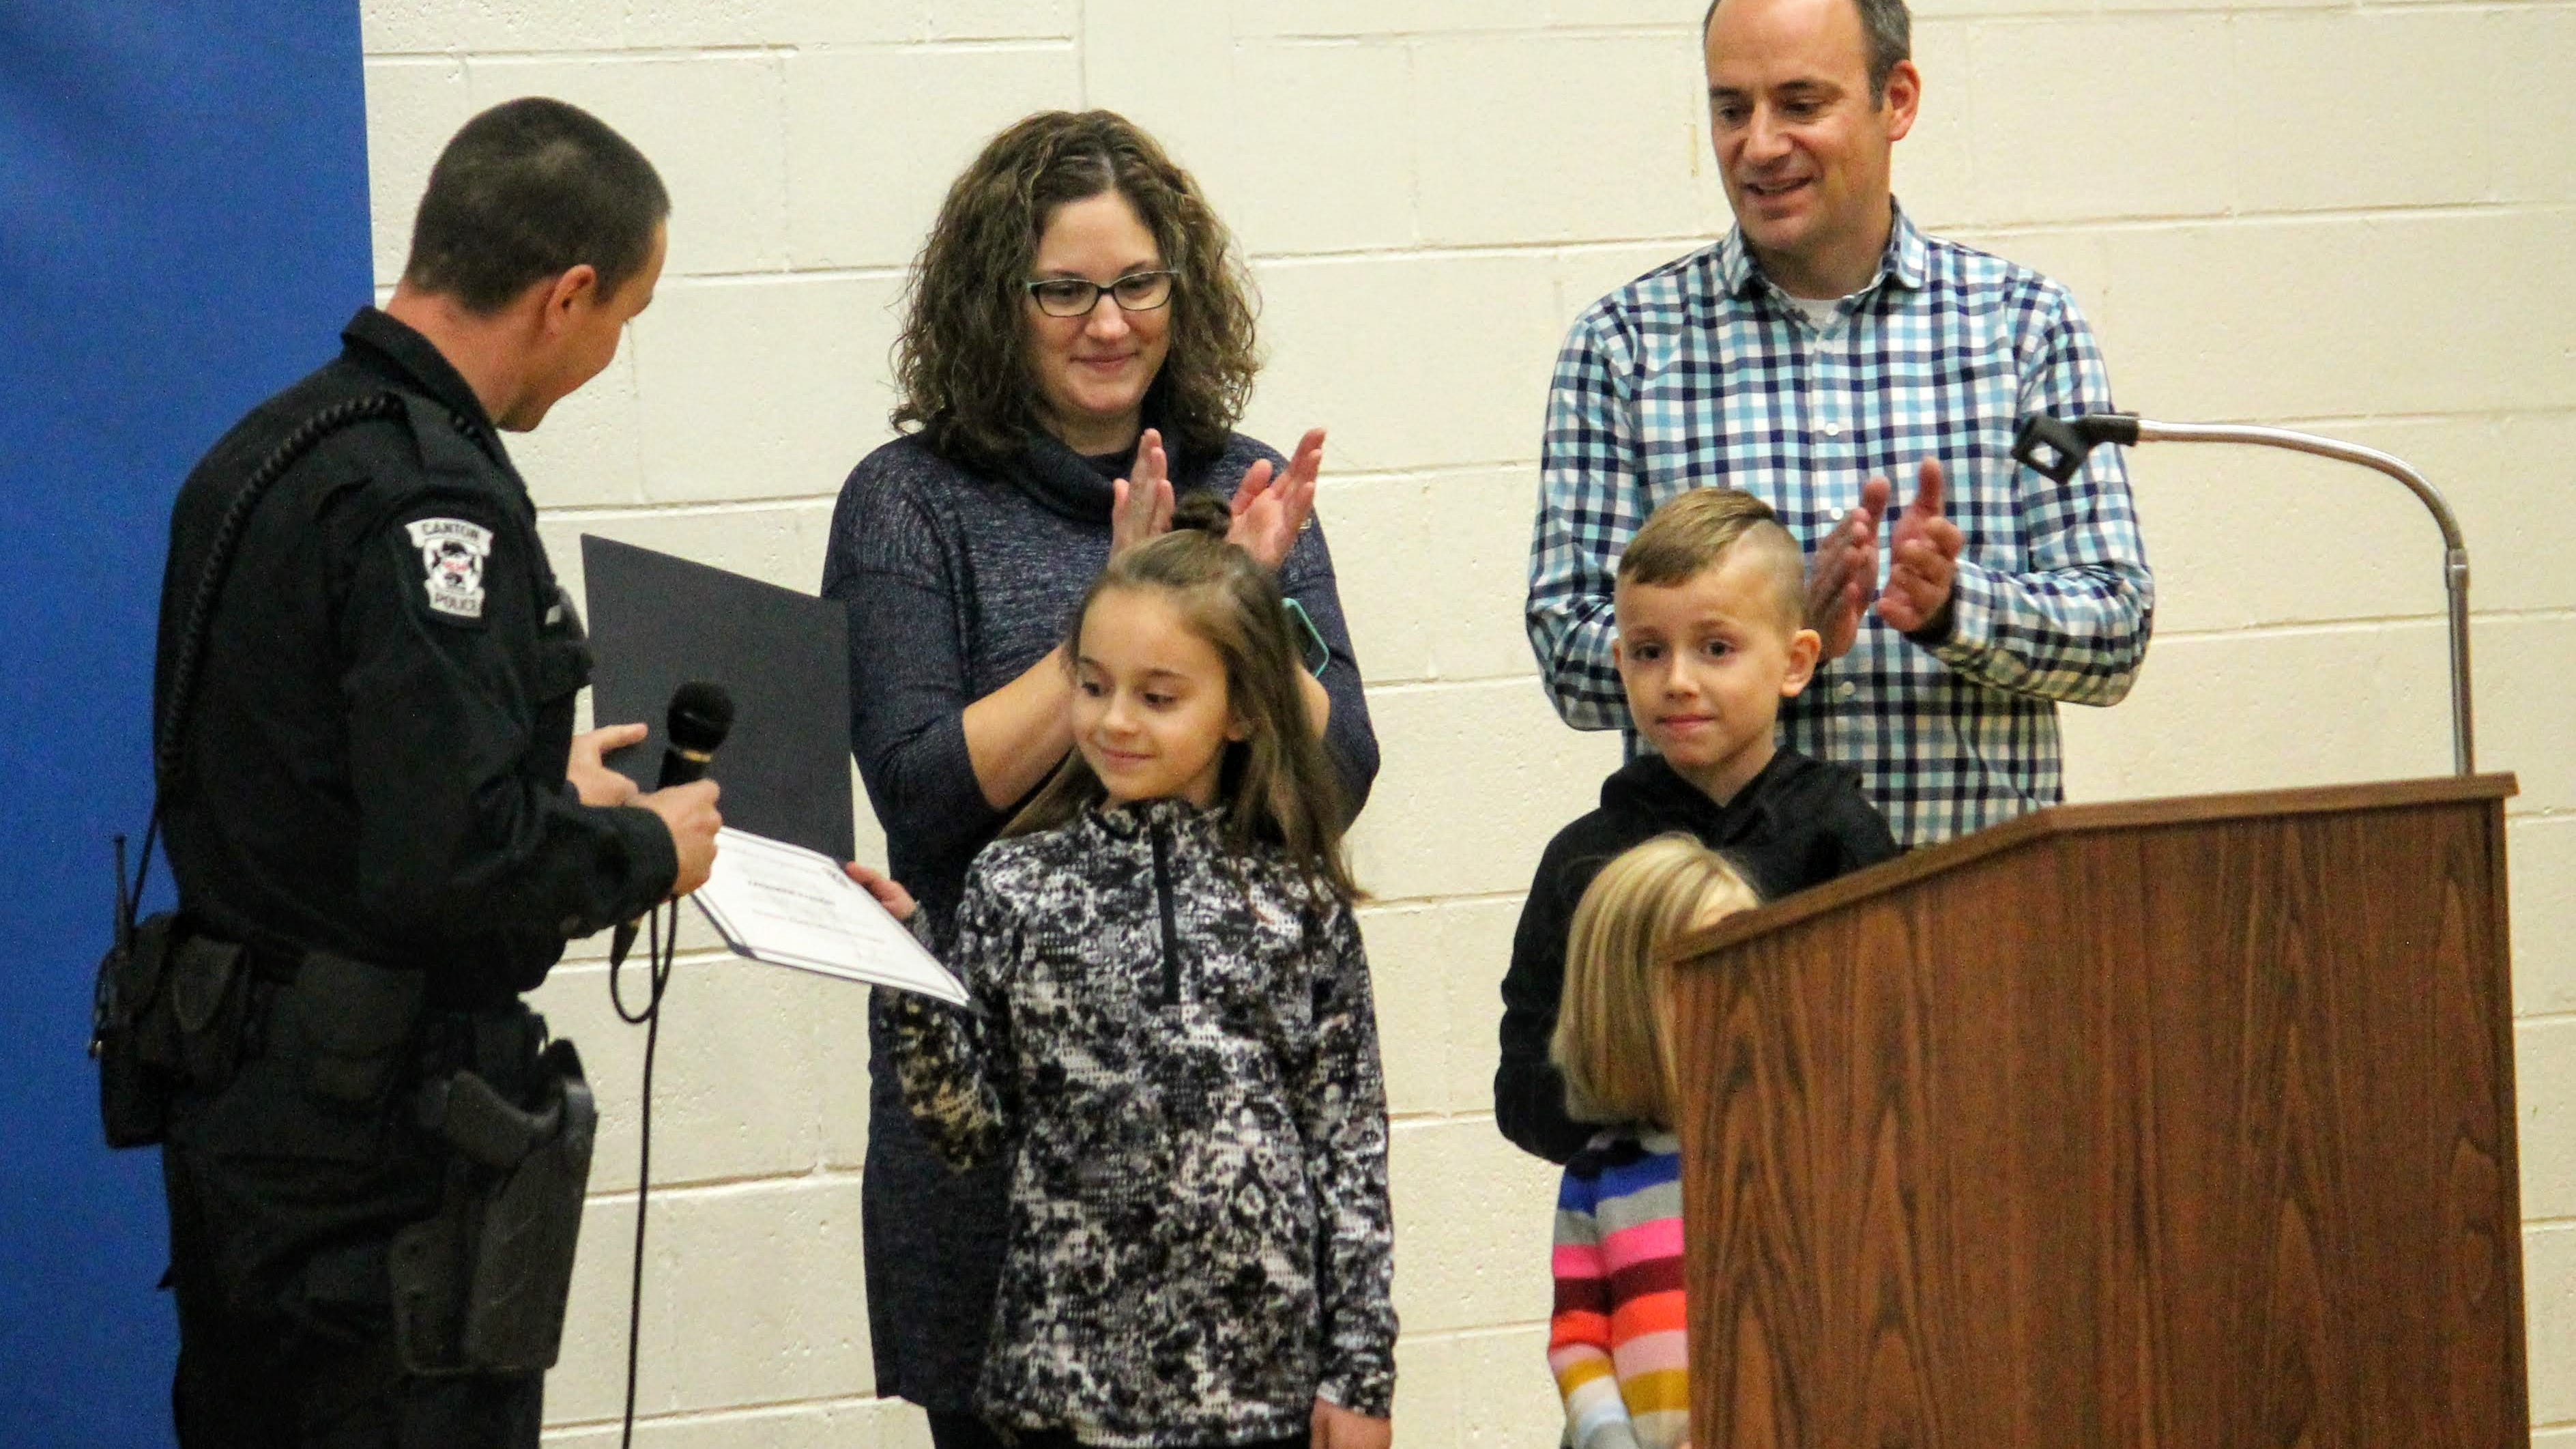 Ten-year-old Kate Evanoff, a fifth grader at Johnson Upper Elementary School in Westland, was recently honored during an assembly at her school for her quick-thinking in getting emergency help for her mother while driving in Canton. Presenting the award is Canton police officer Brian Zinser, who responded to the call. Standing behind Evanoff is her parents and siblings.